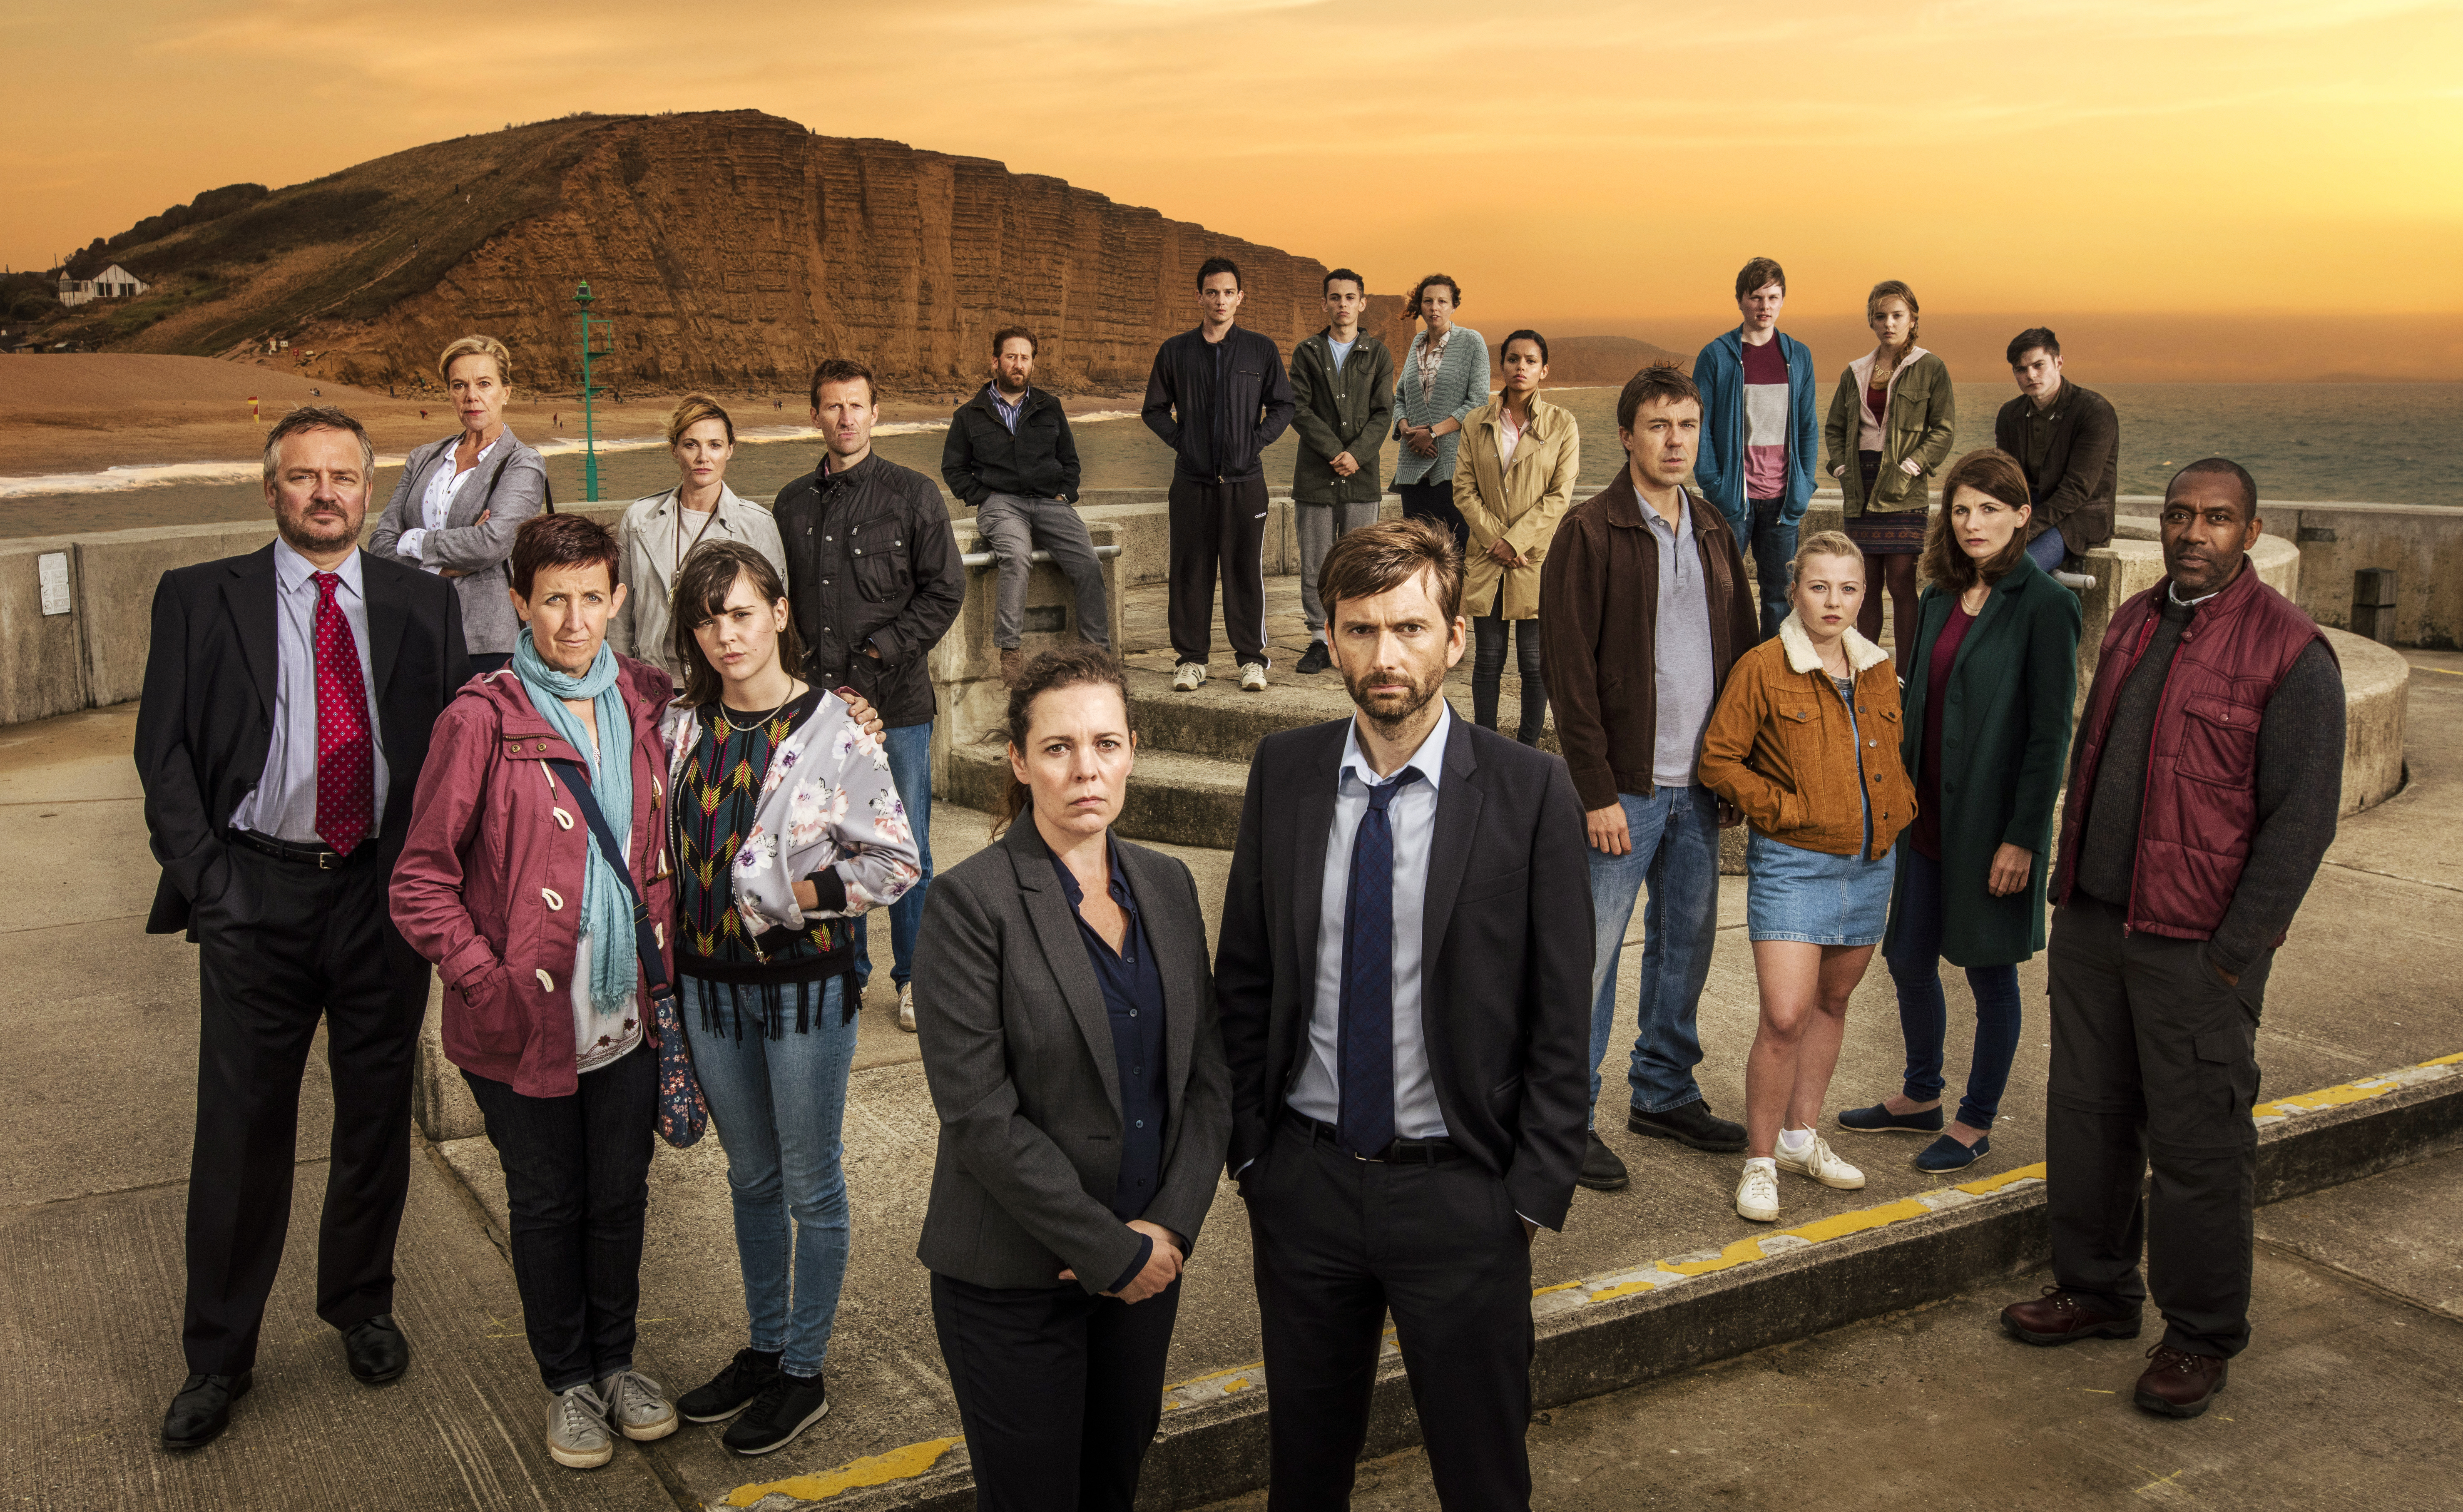 Broadchurch review: Tense finale manages to deliver the unthinkable but so many avenues left unexplored